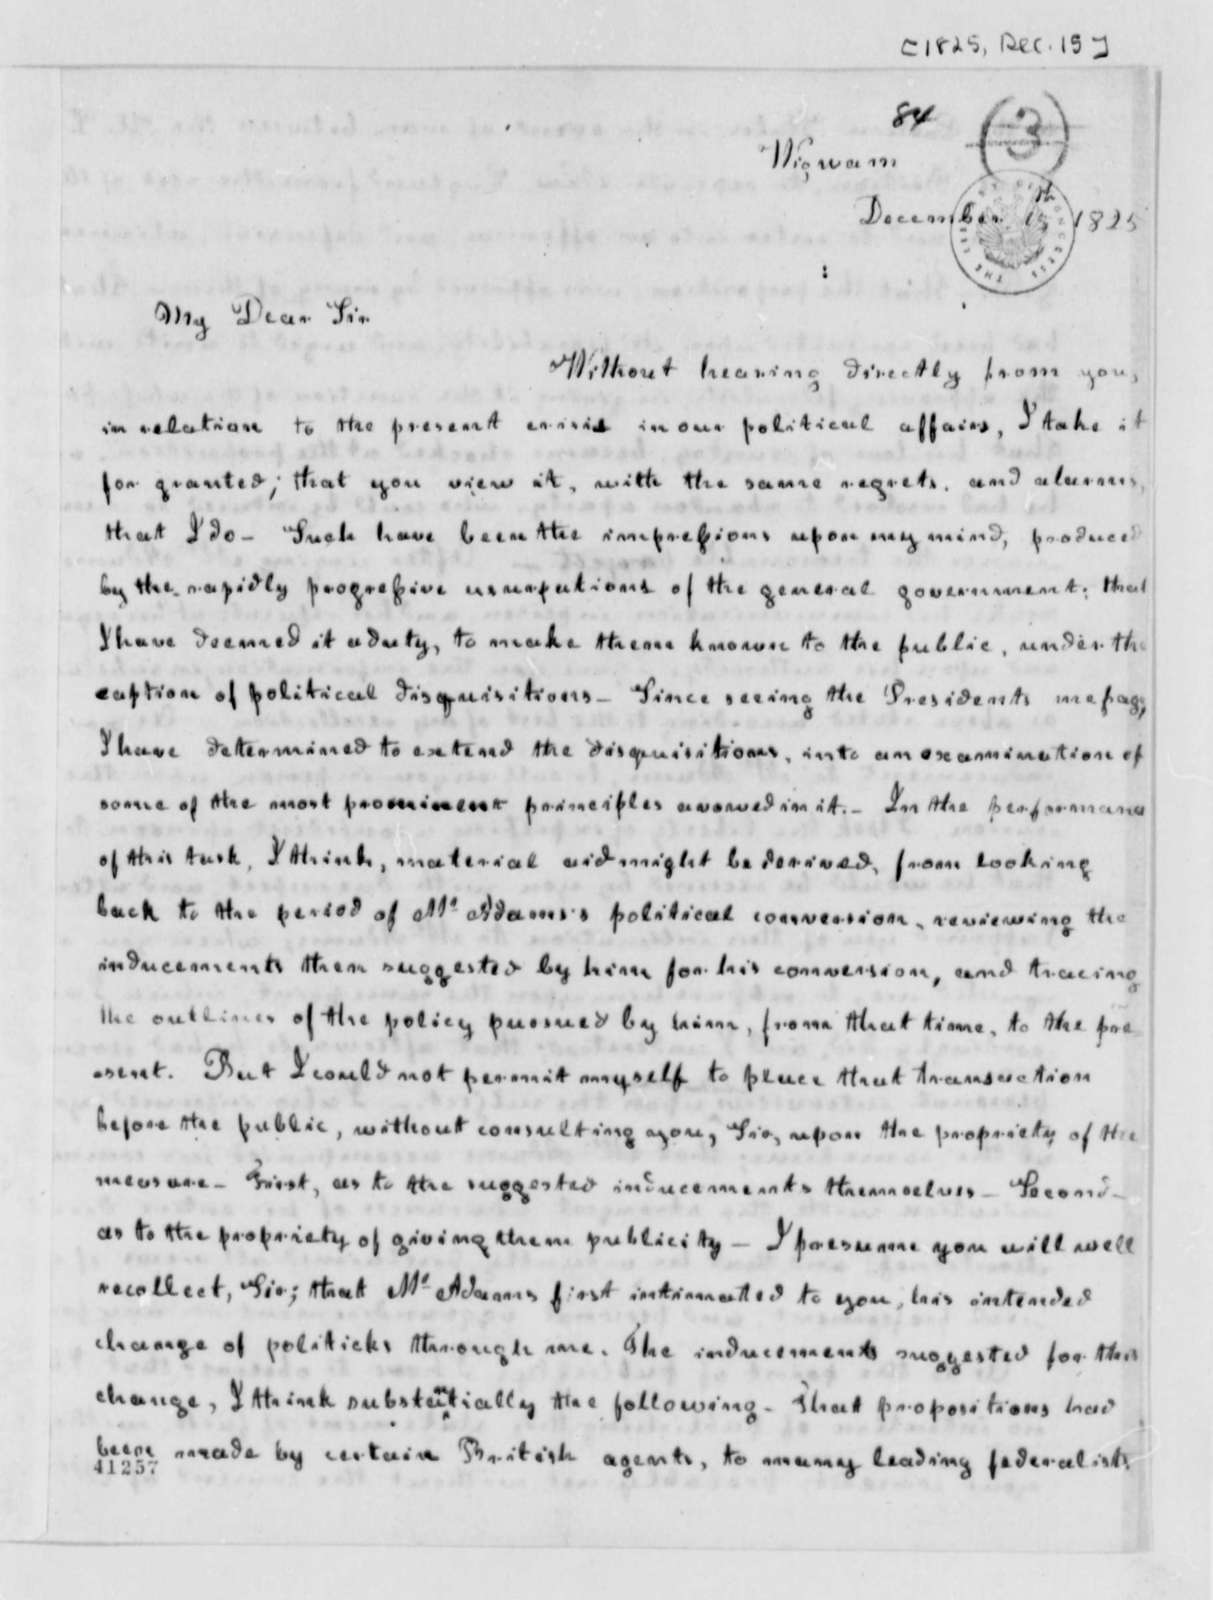 William B. Giles to Thomas Jefferson, December 15, 1825, Two of Same Date